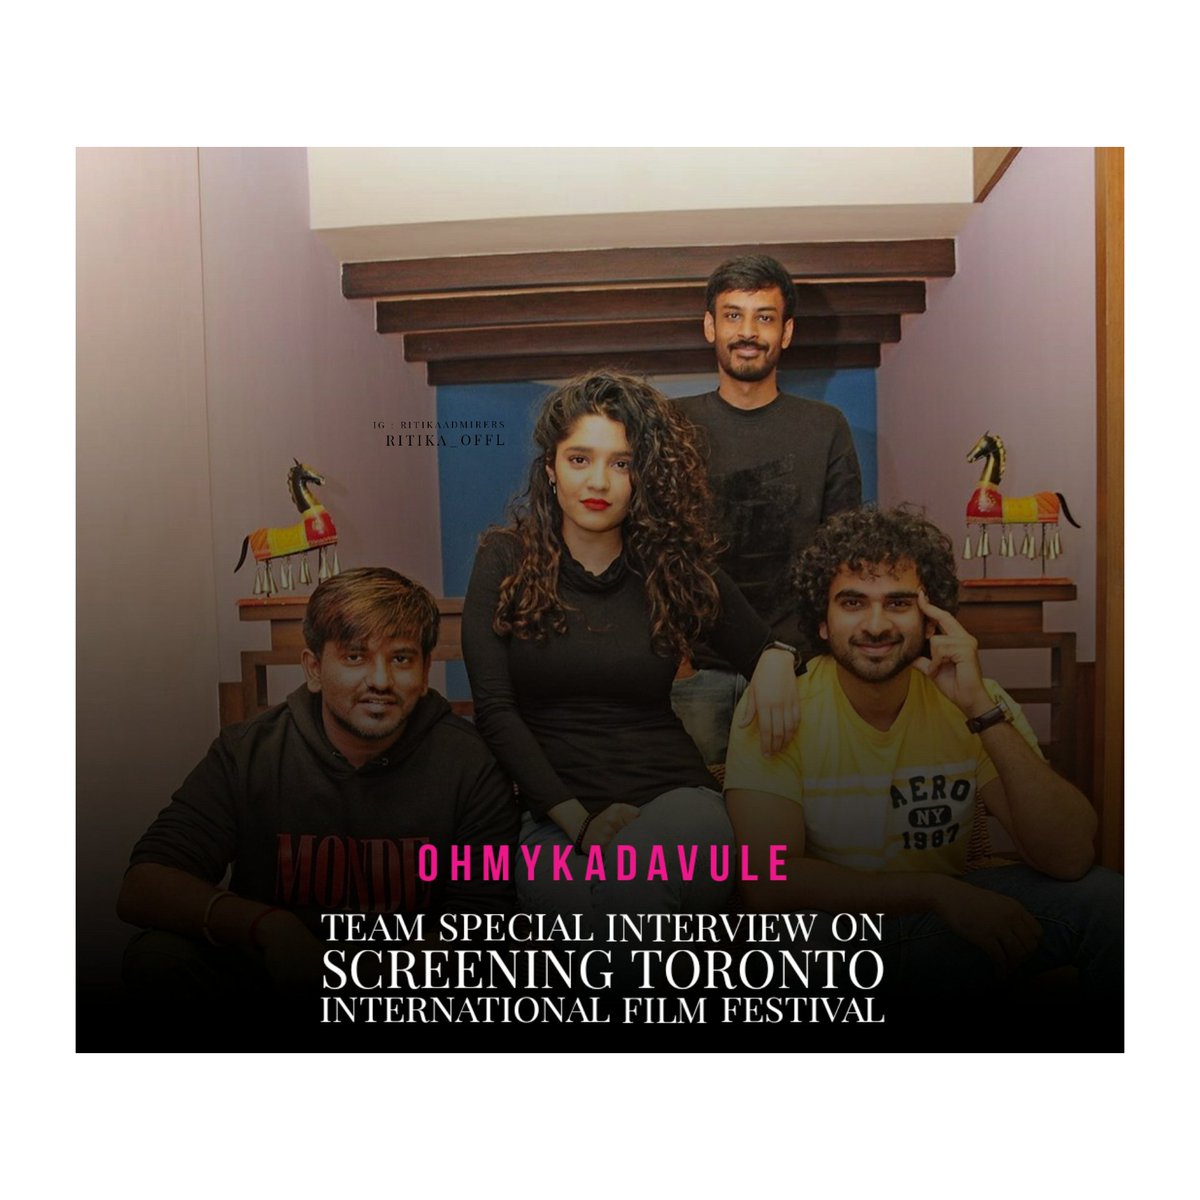 #OhMyKadavule screening today Aug 14th at 7 pm in Toronto film festival, Best wishes to @ritika_offl and cast & crew of the movie. Also, we have a special interview with @Dir_Ashwath @ashokselvan & @leon_james Have a fantastic day.  . . . #Ritikasingh #WeLoveRitikasingh https://t.co/hzuVVq4Wr0